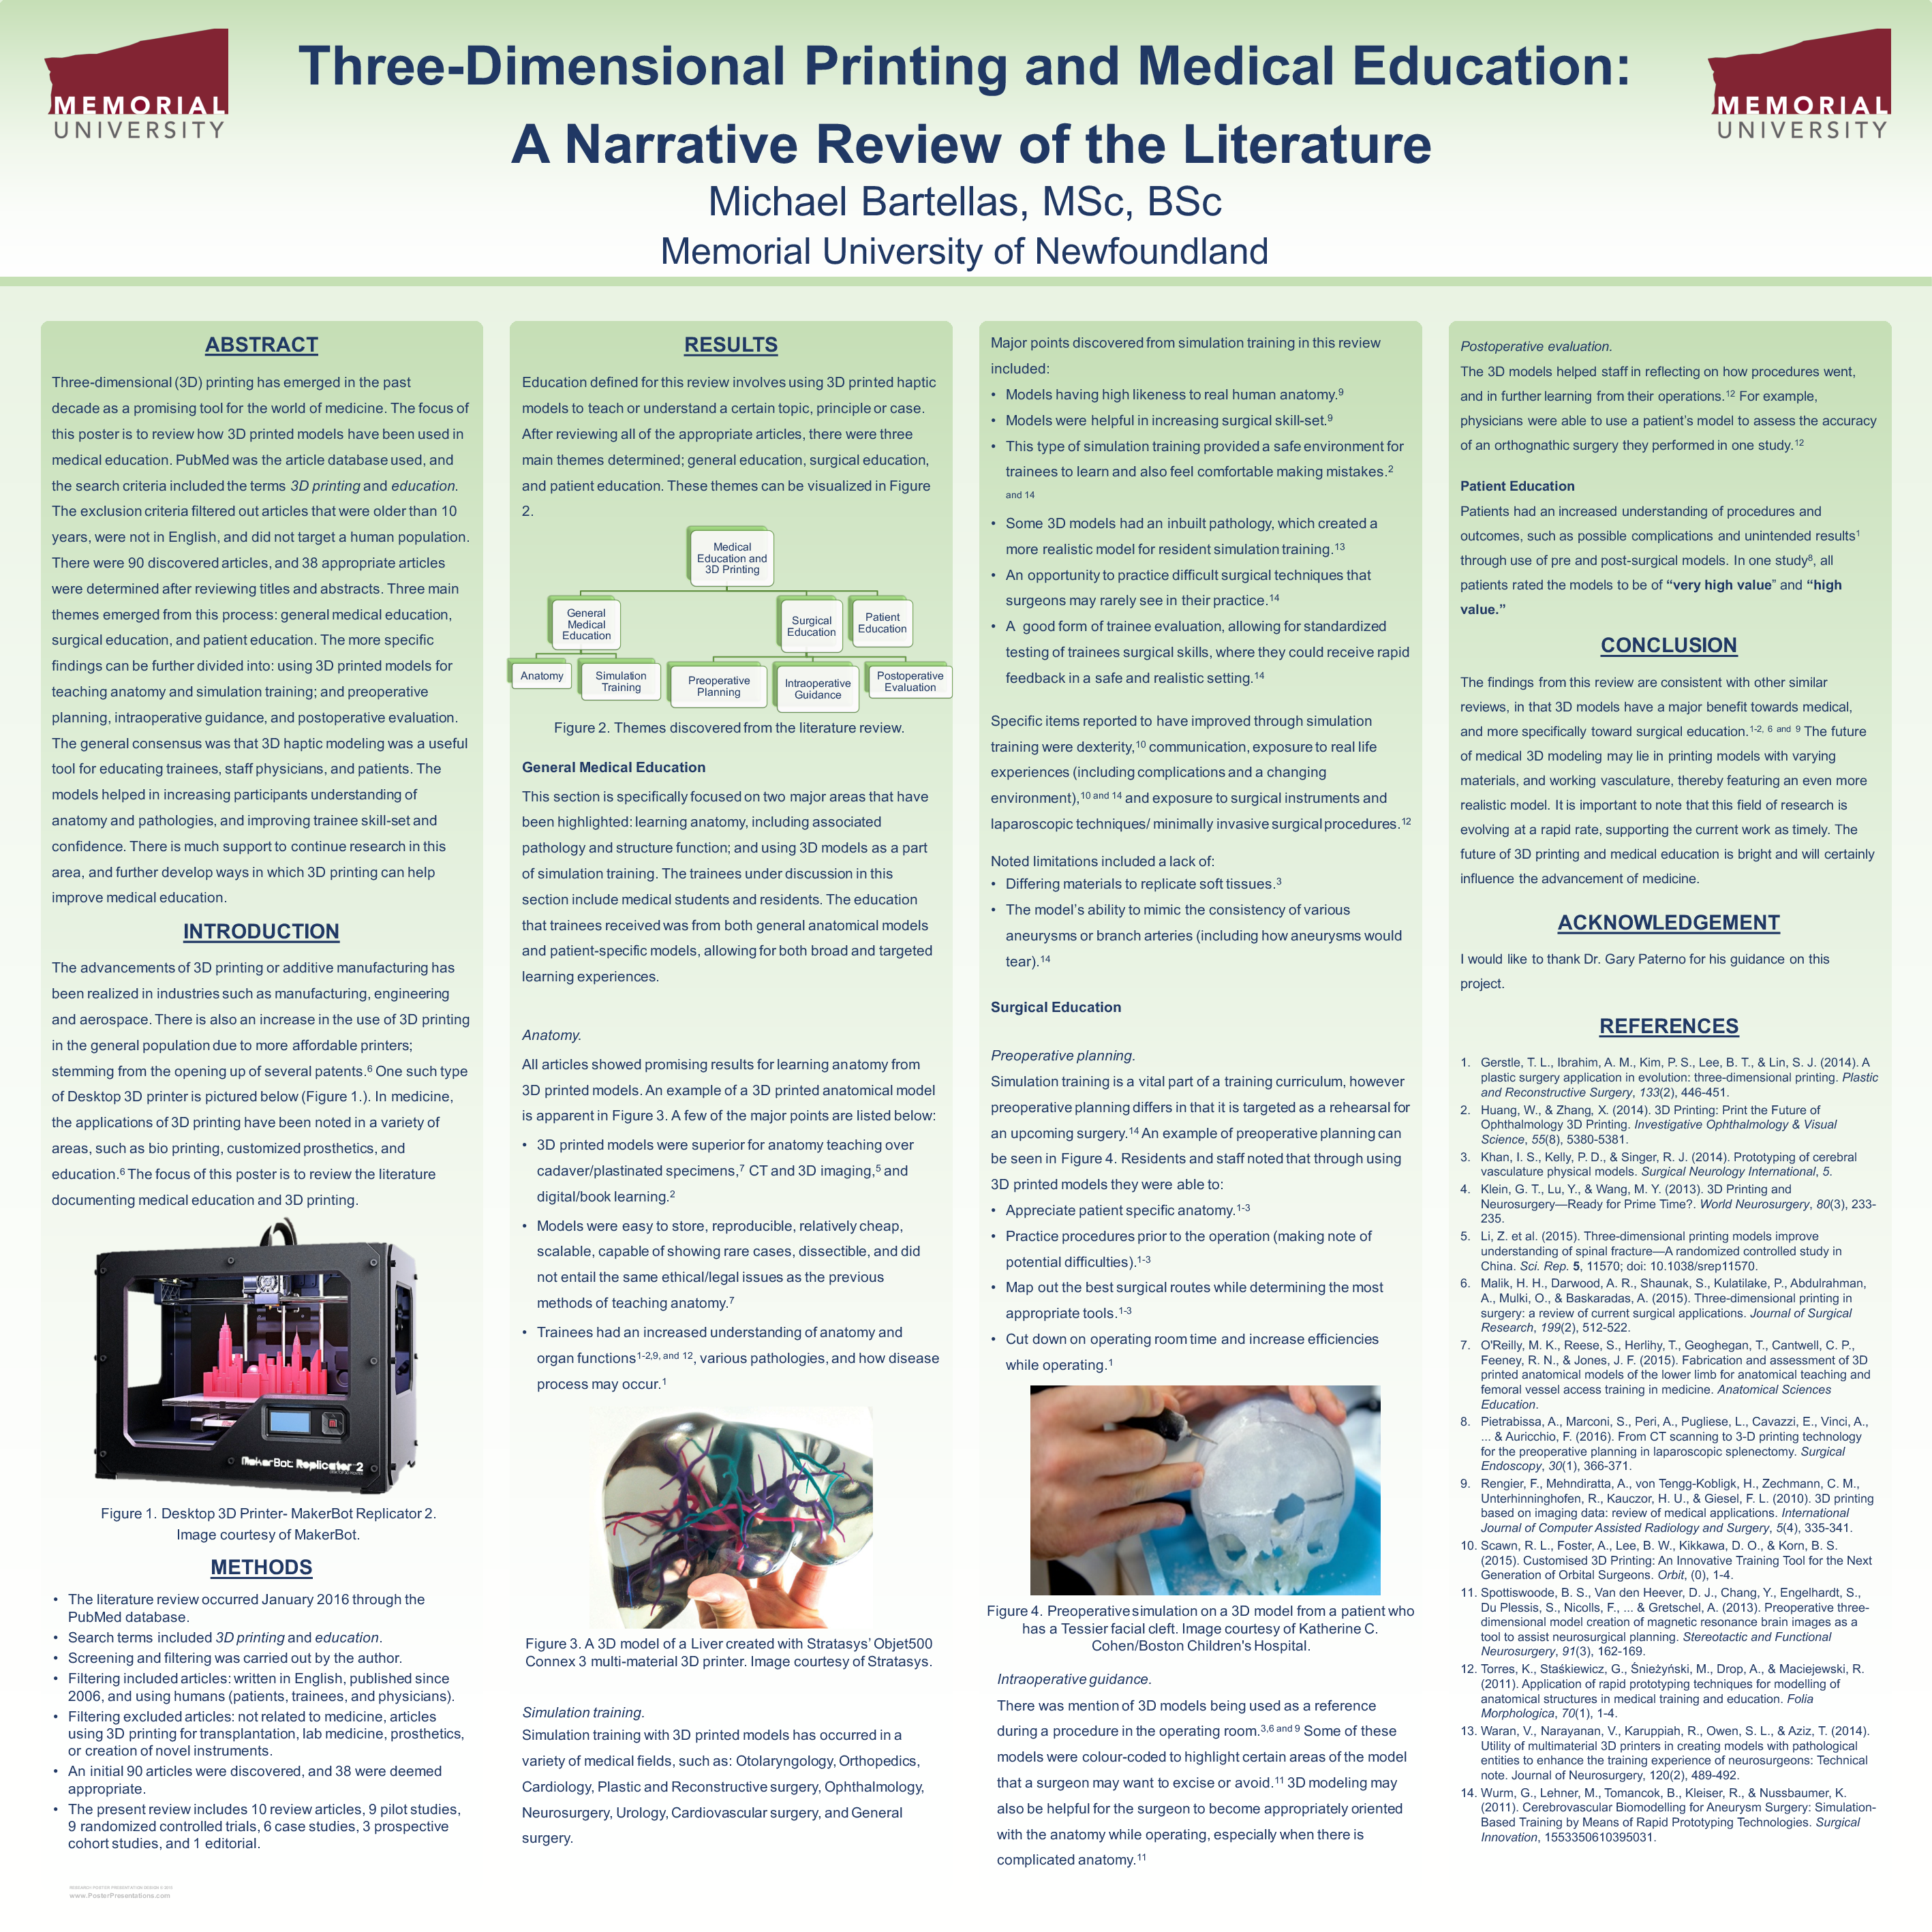 Converted 5b791150a54b11e6becdcb68a4c7c649 21resized cags poster literature review on medical education and 3d printing  michael bartellas